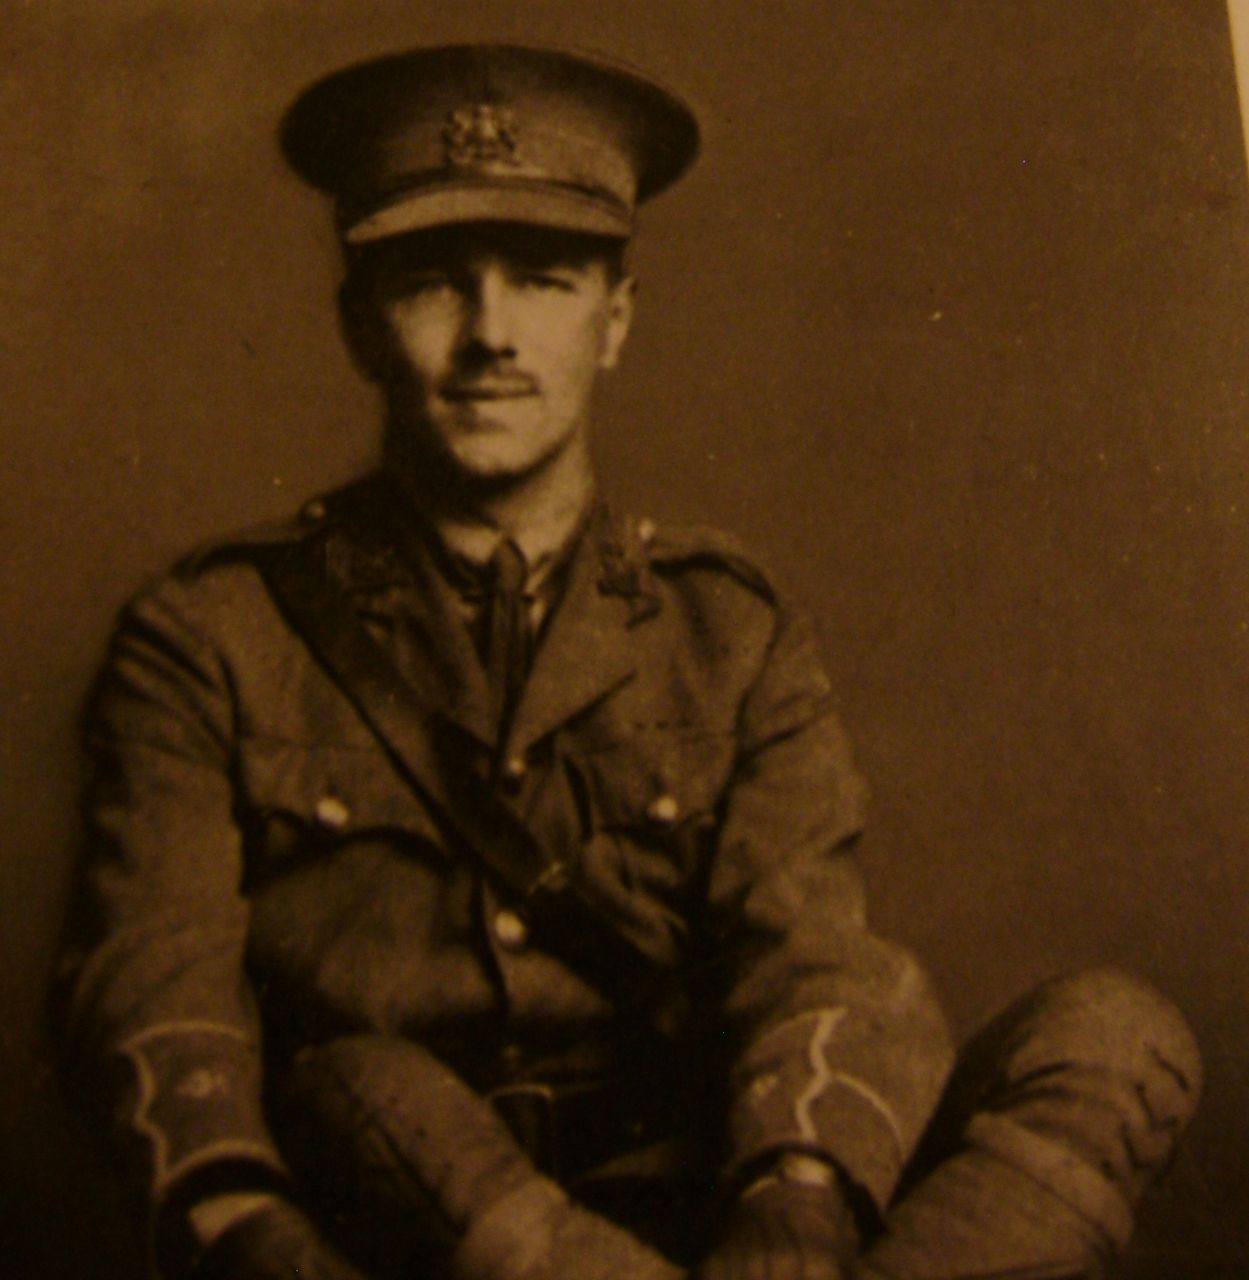 wilfred owens poetry In the war requiem, britten combined the text of the latin missa pro defunctis  with the poems of wilfred owen acting as commentary wilfred owen's poems.